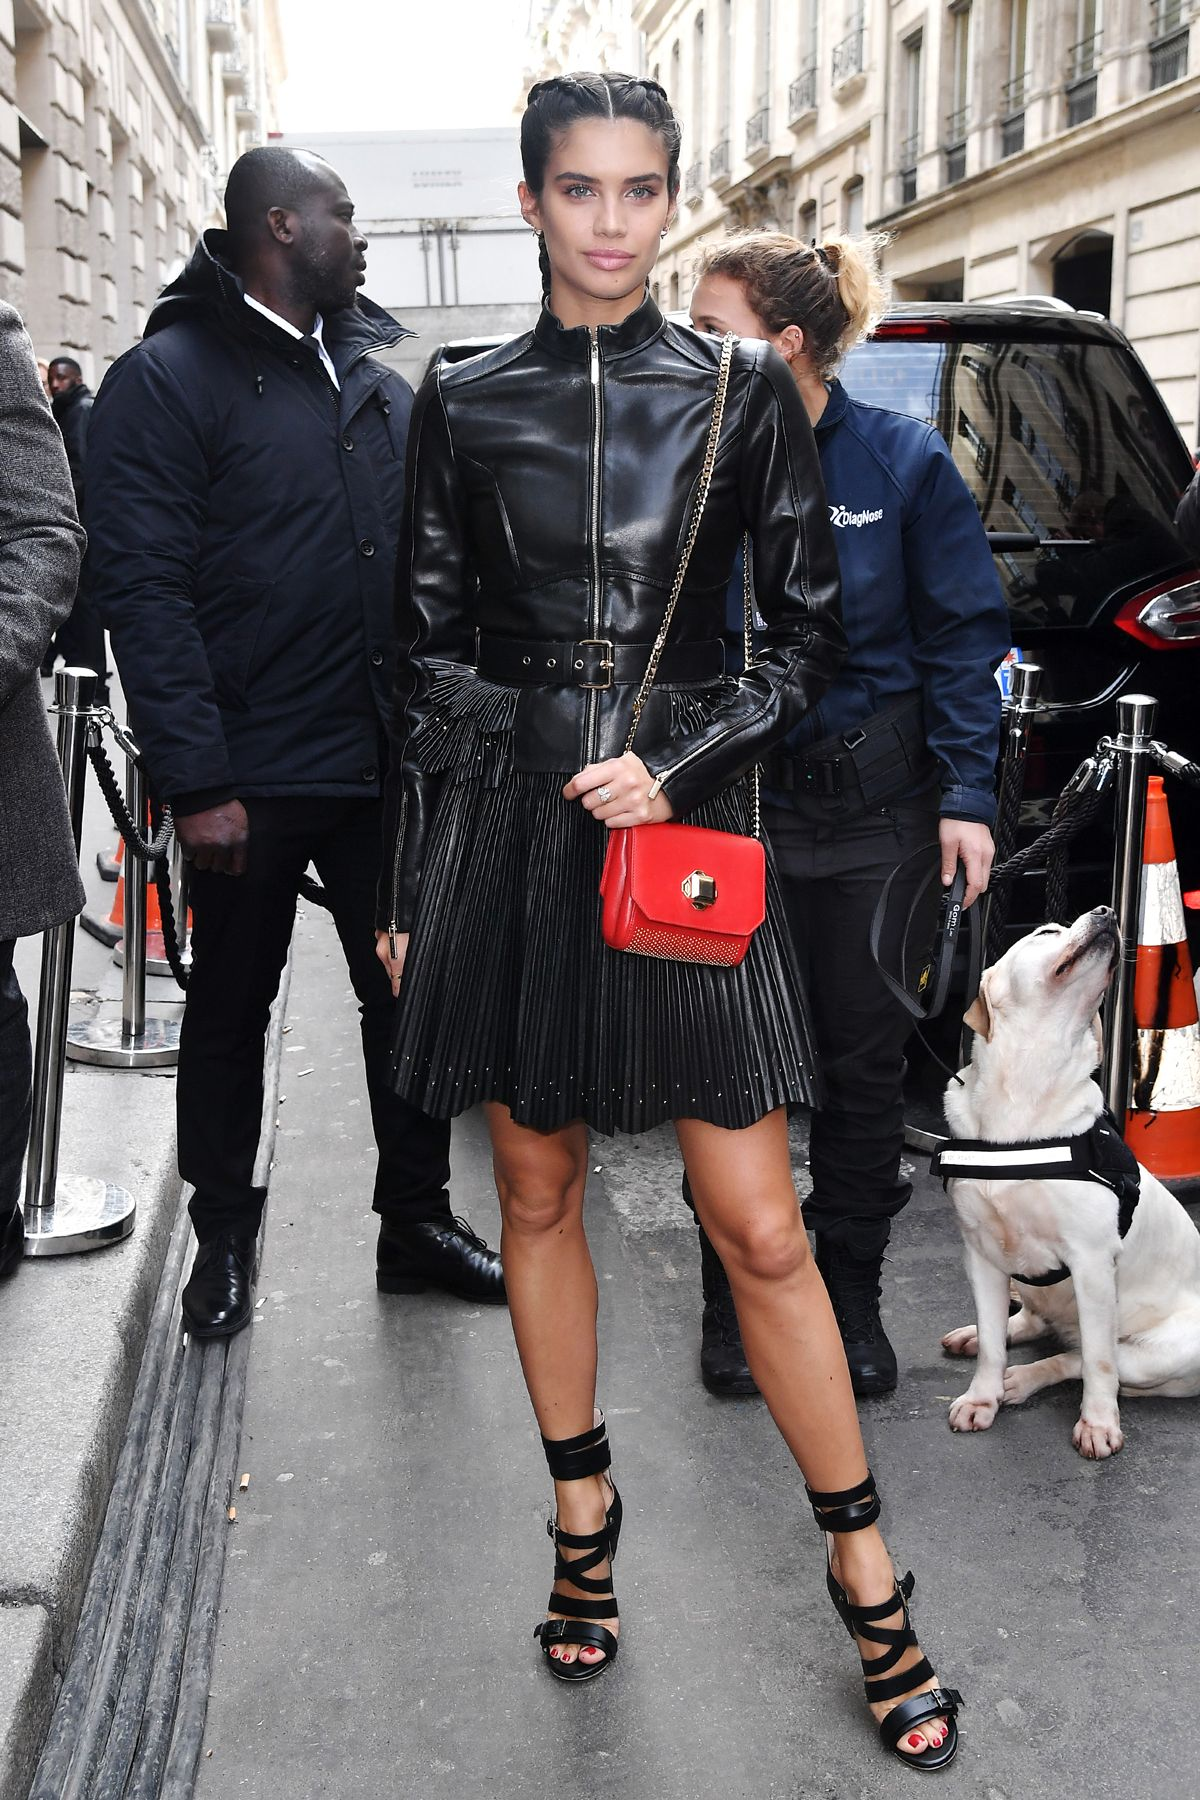 The Best Street Style Moments at Haute Couture PFW 2019 recommend